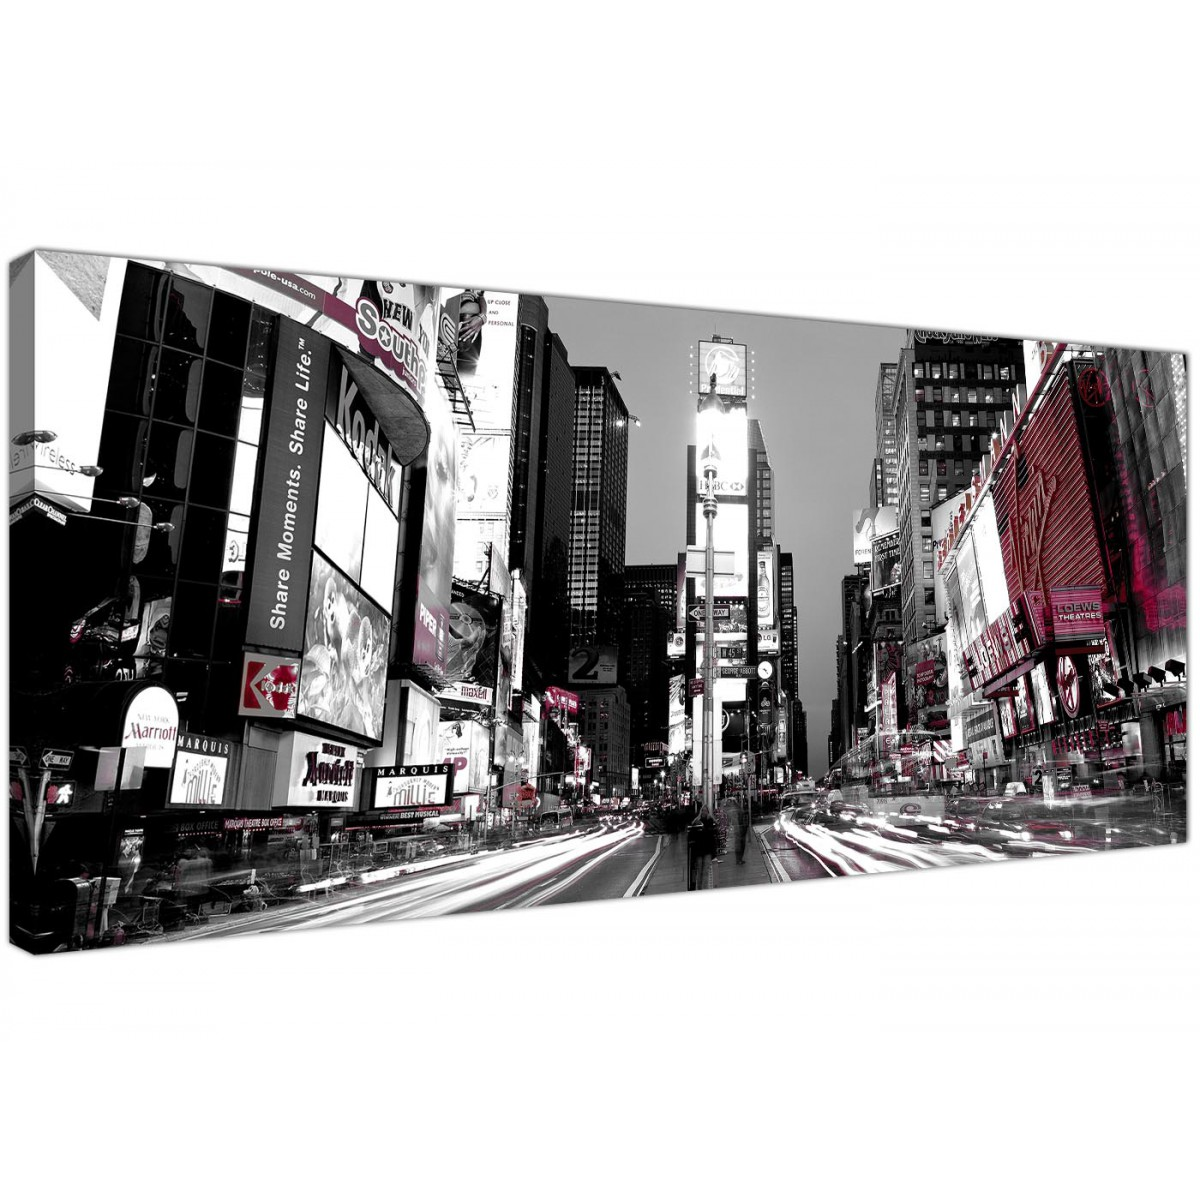 42ND STREET NEW YORK CANVAS PRINT PICTURE WALL ART FREE FAST UK DELIVERY